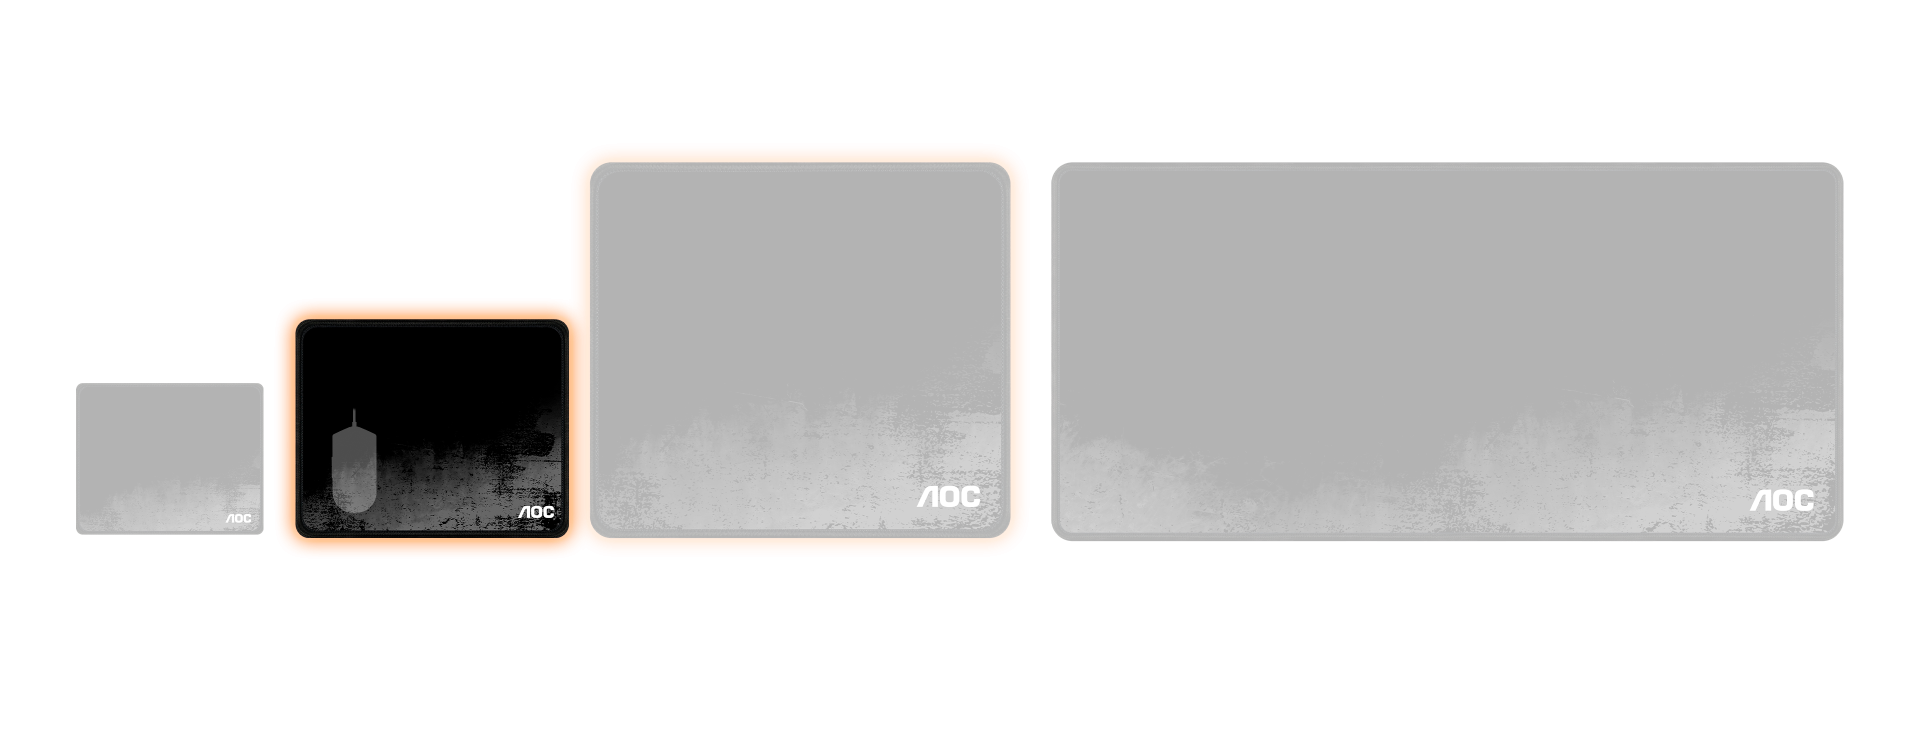 AGON_BY_AOC_FV_FW_MOUSEPAD_M_FRONT.png